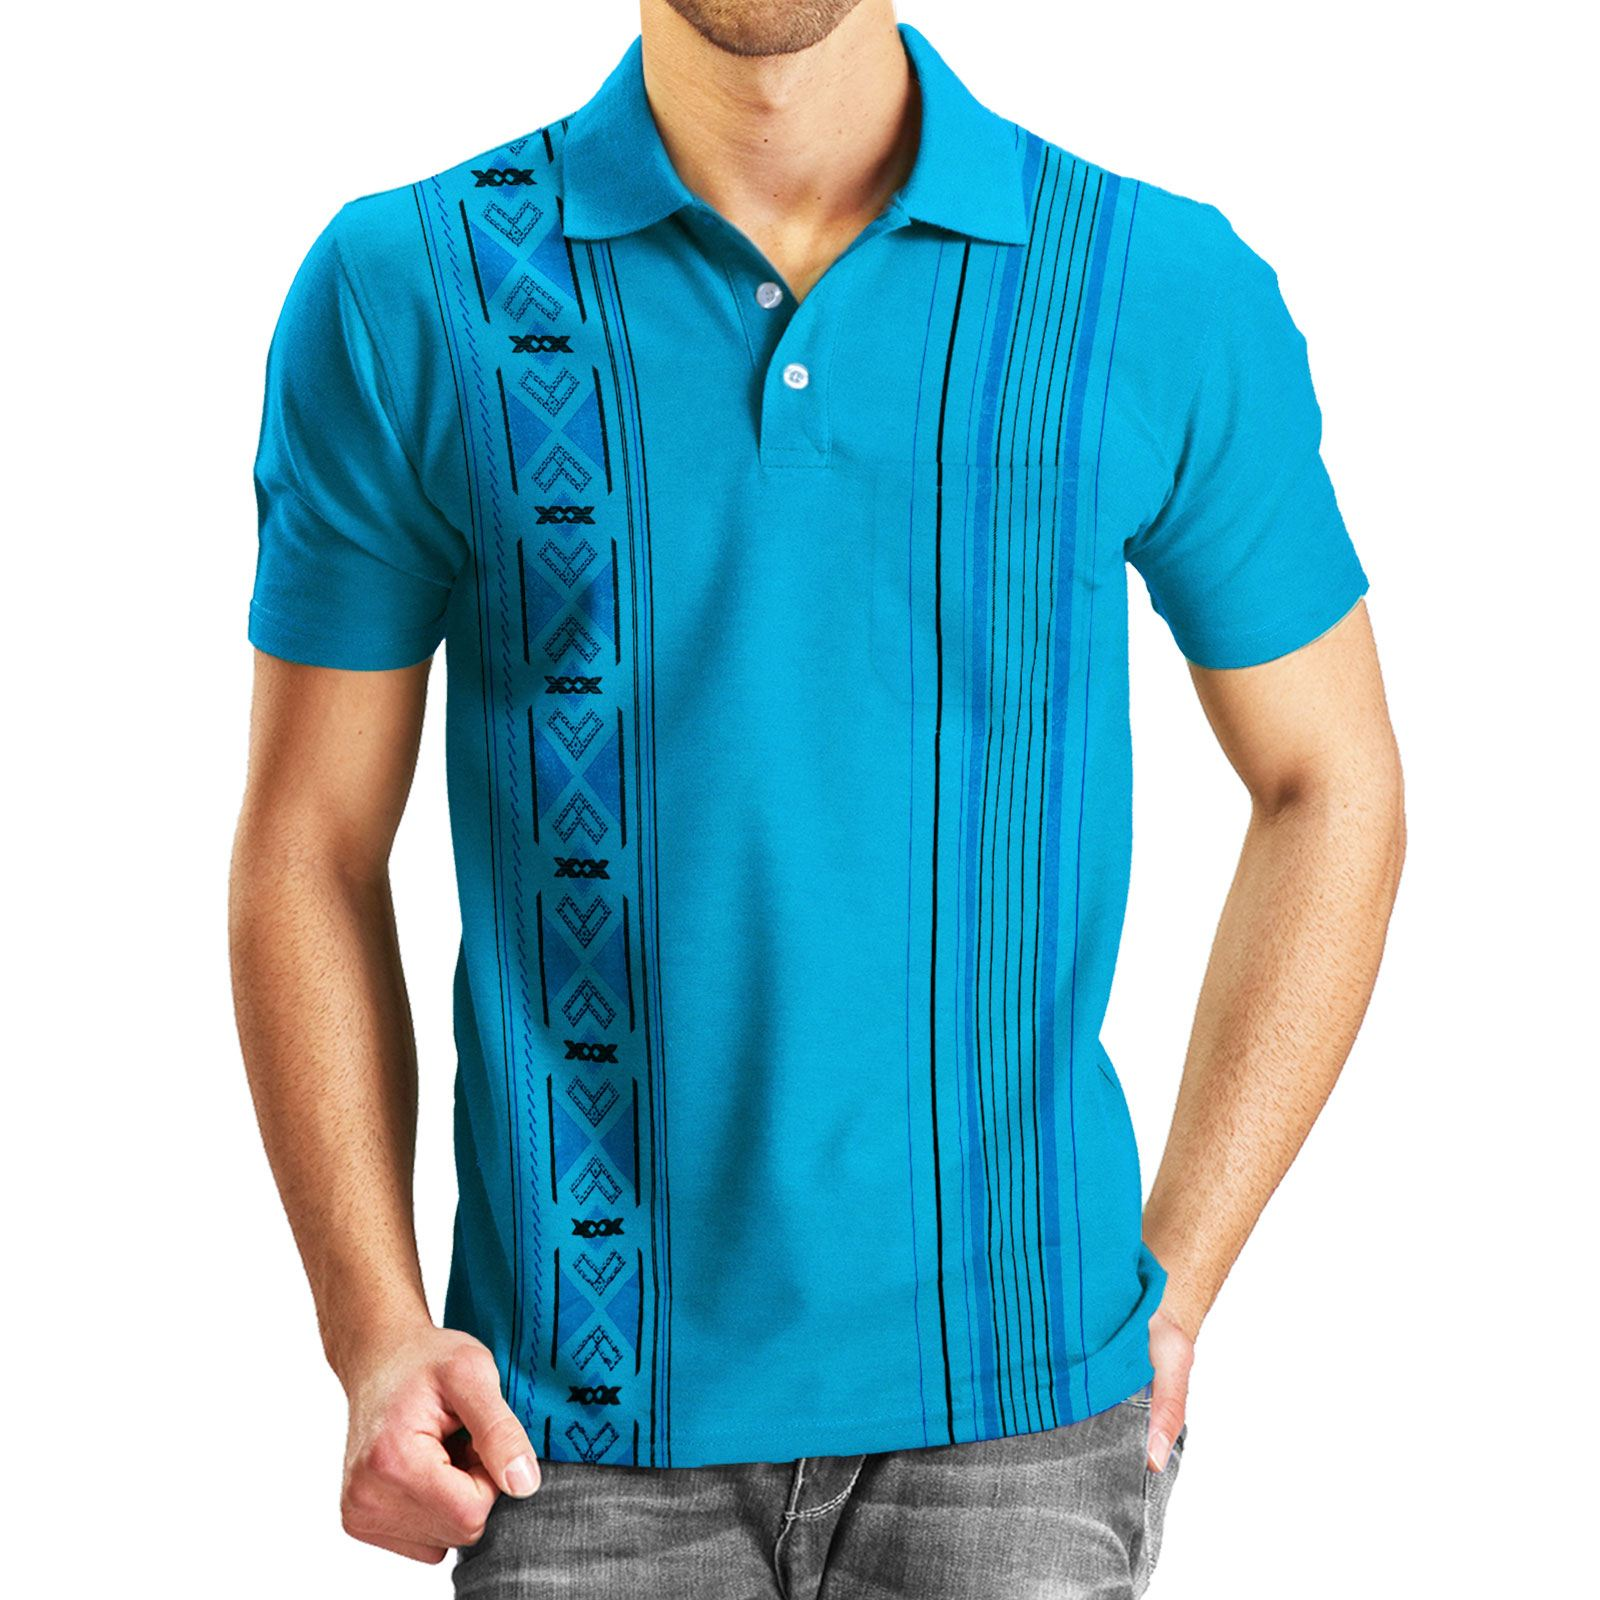 Shop for and buy mens xxl shirts online at Macy's. Find mens xxl shirts at Macy's.